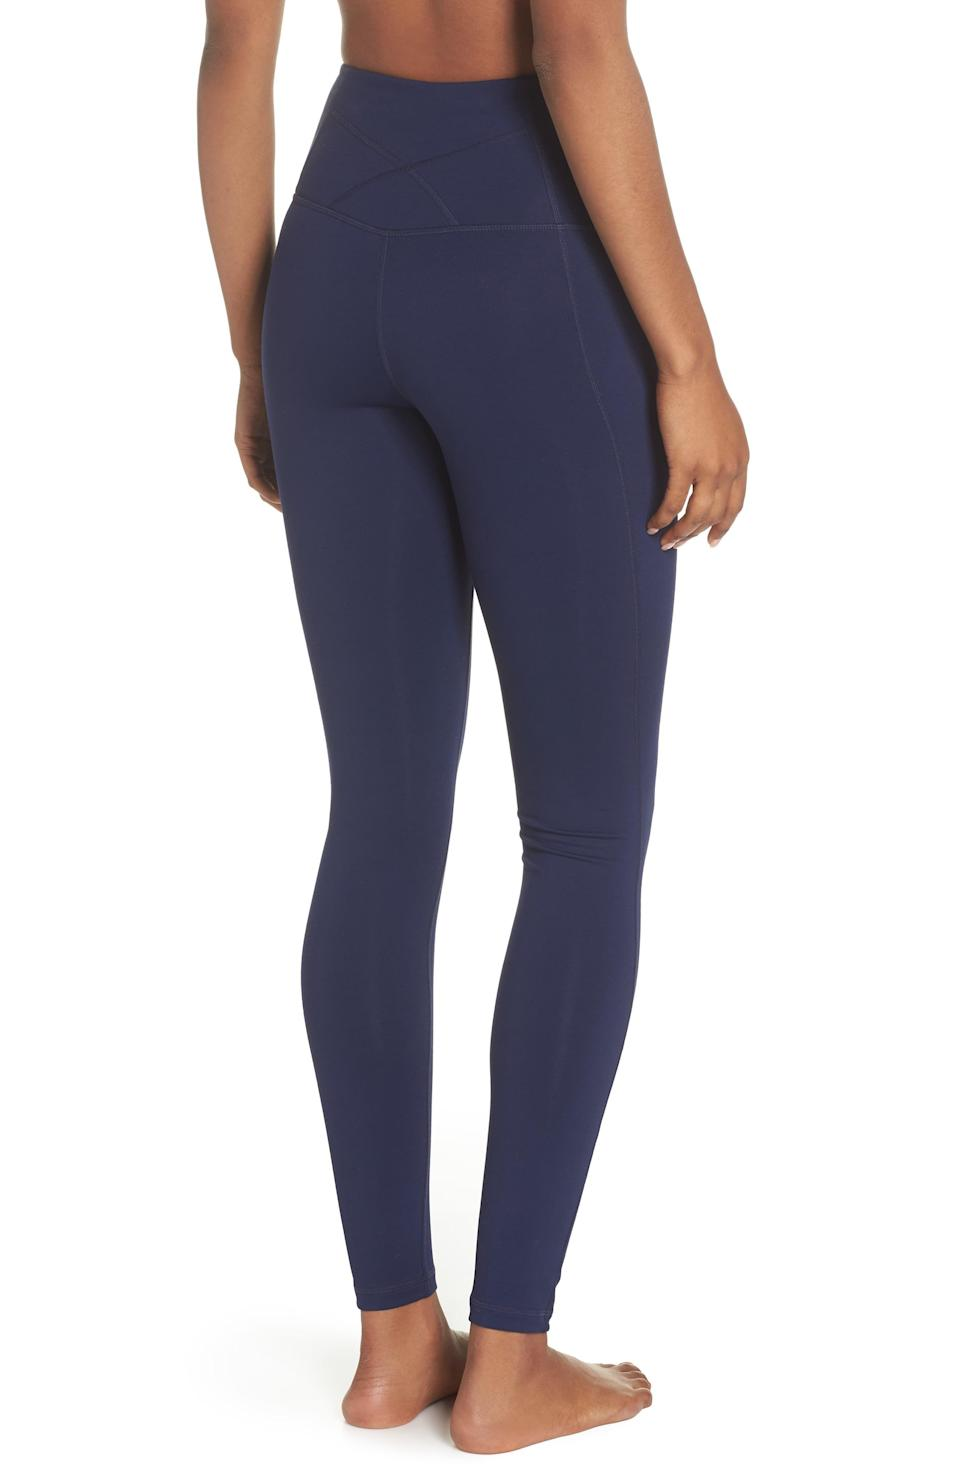 """<p><strong>ZELLA</strong></p><p>nordstrom.com</p><p><strong>$38.90</strong></p><p><a href=""""https://go.redirectingat.com?id=74968X1596630&url=https%3A%2F%2Fwww.nordstrom.com%2Fs%2Fzella-live-in-high-waist-leggings%2F4312529&sref=https%3A%2F%2Fwww.womenshealthmag.com%2Flife%2Fg33415769%2Fnordstrom-anniversay-sale-preview%2F"""" rel=""""nofollow noopener"""" target=""""_blank"""" data-ylk=""""slk:Shop Now"""" class=""""link rapid-noclick-resp"""">Shop Now</a></p><p>Need a new pair of moisture-wicking workout leggings. These Zella high-waist leggings are also on sale along with a few others. </p>"""